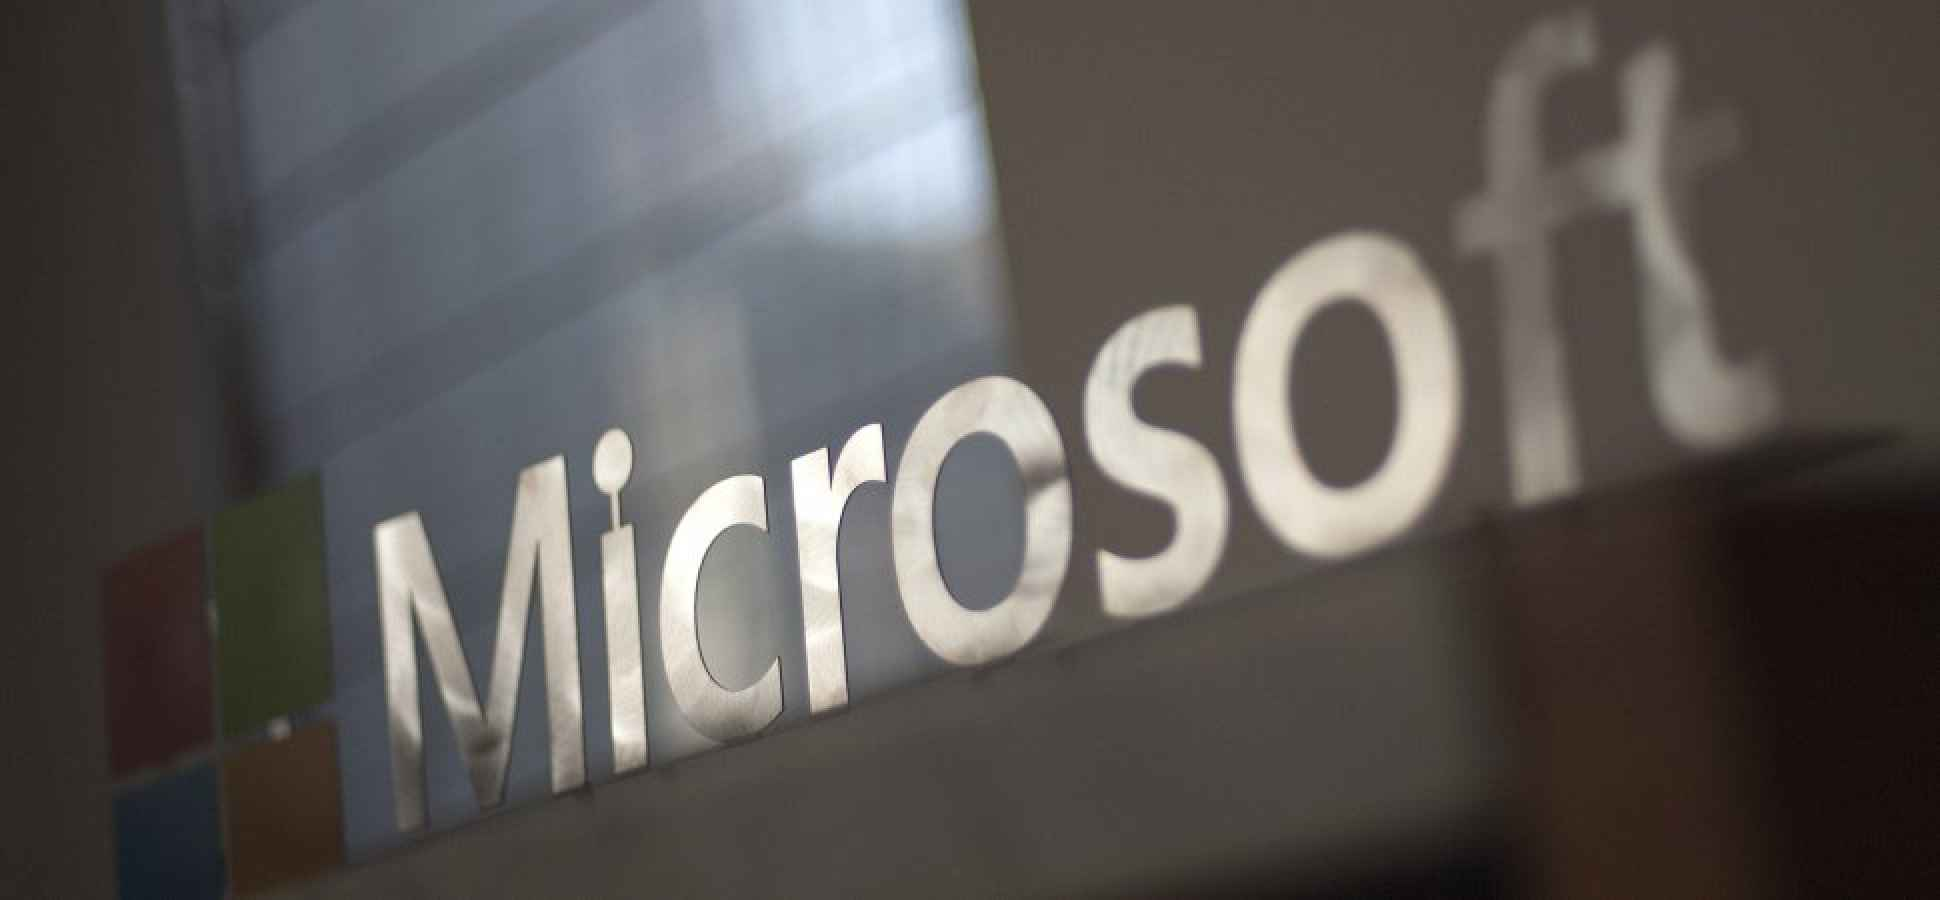 Taking a Look at Microsoft's Hologram Device